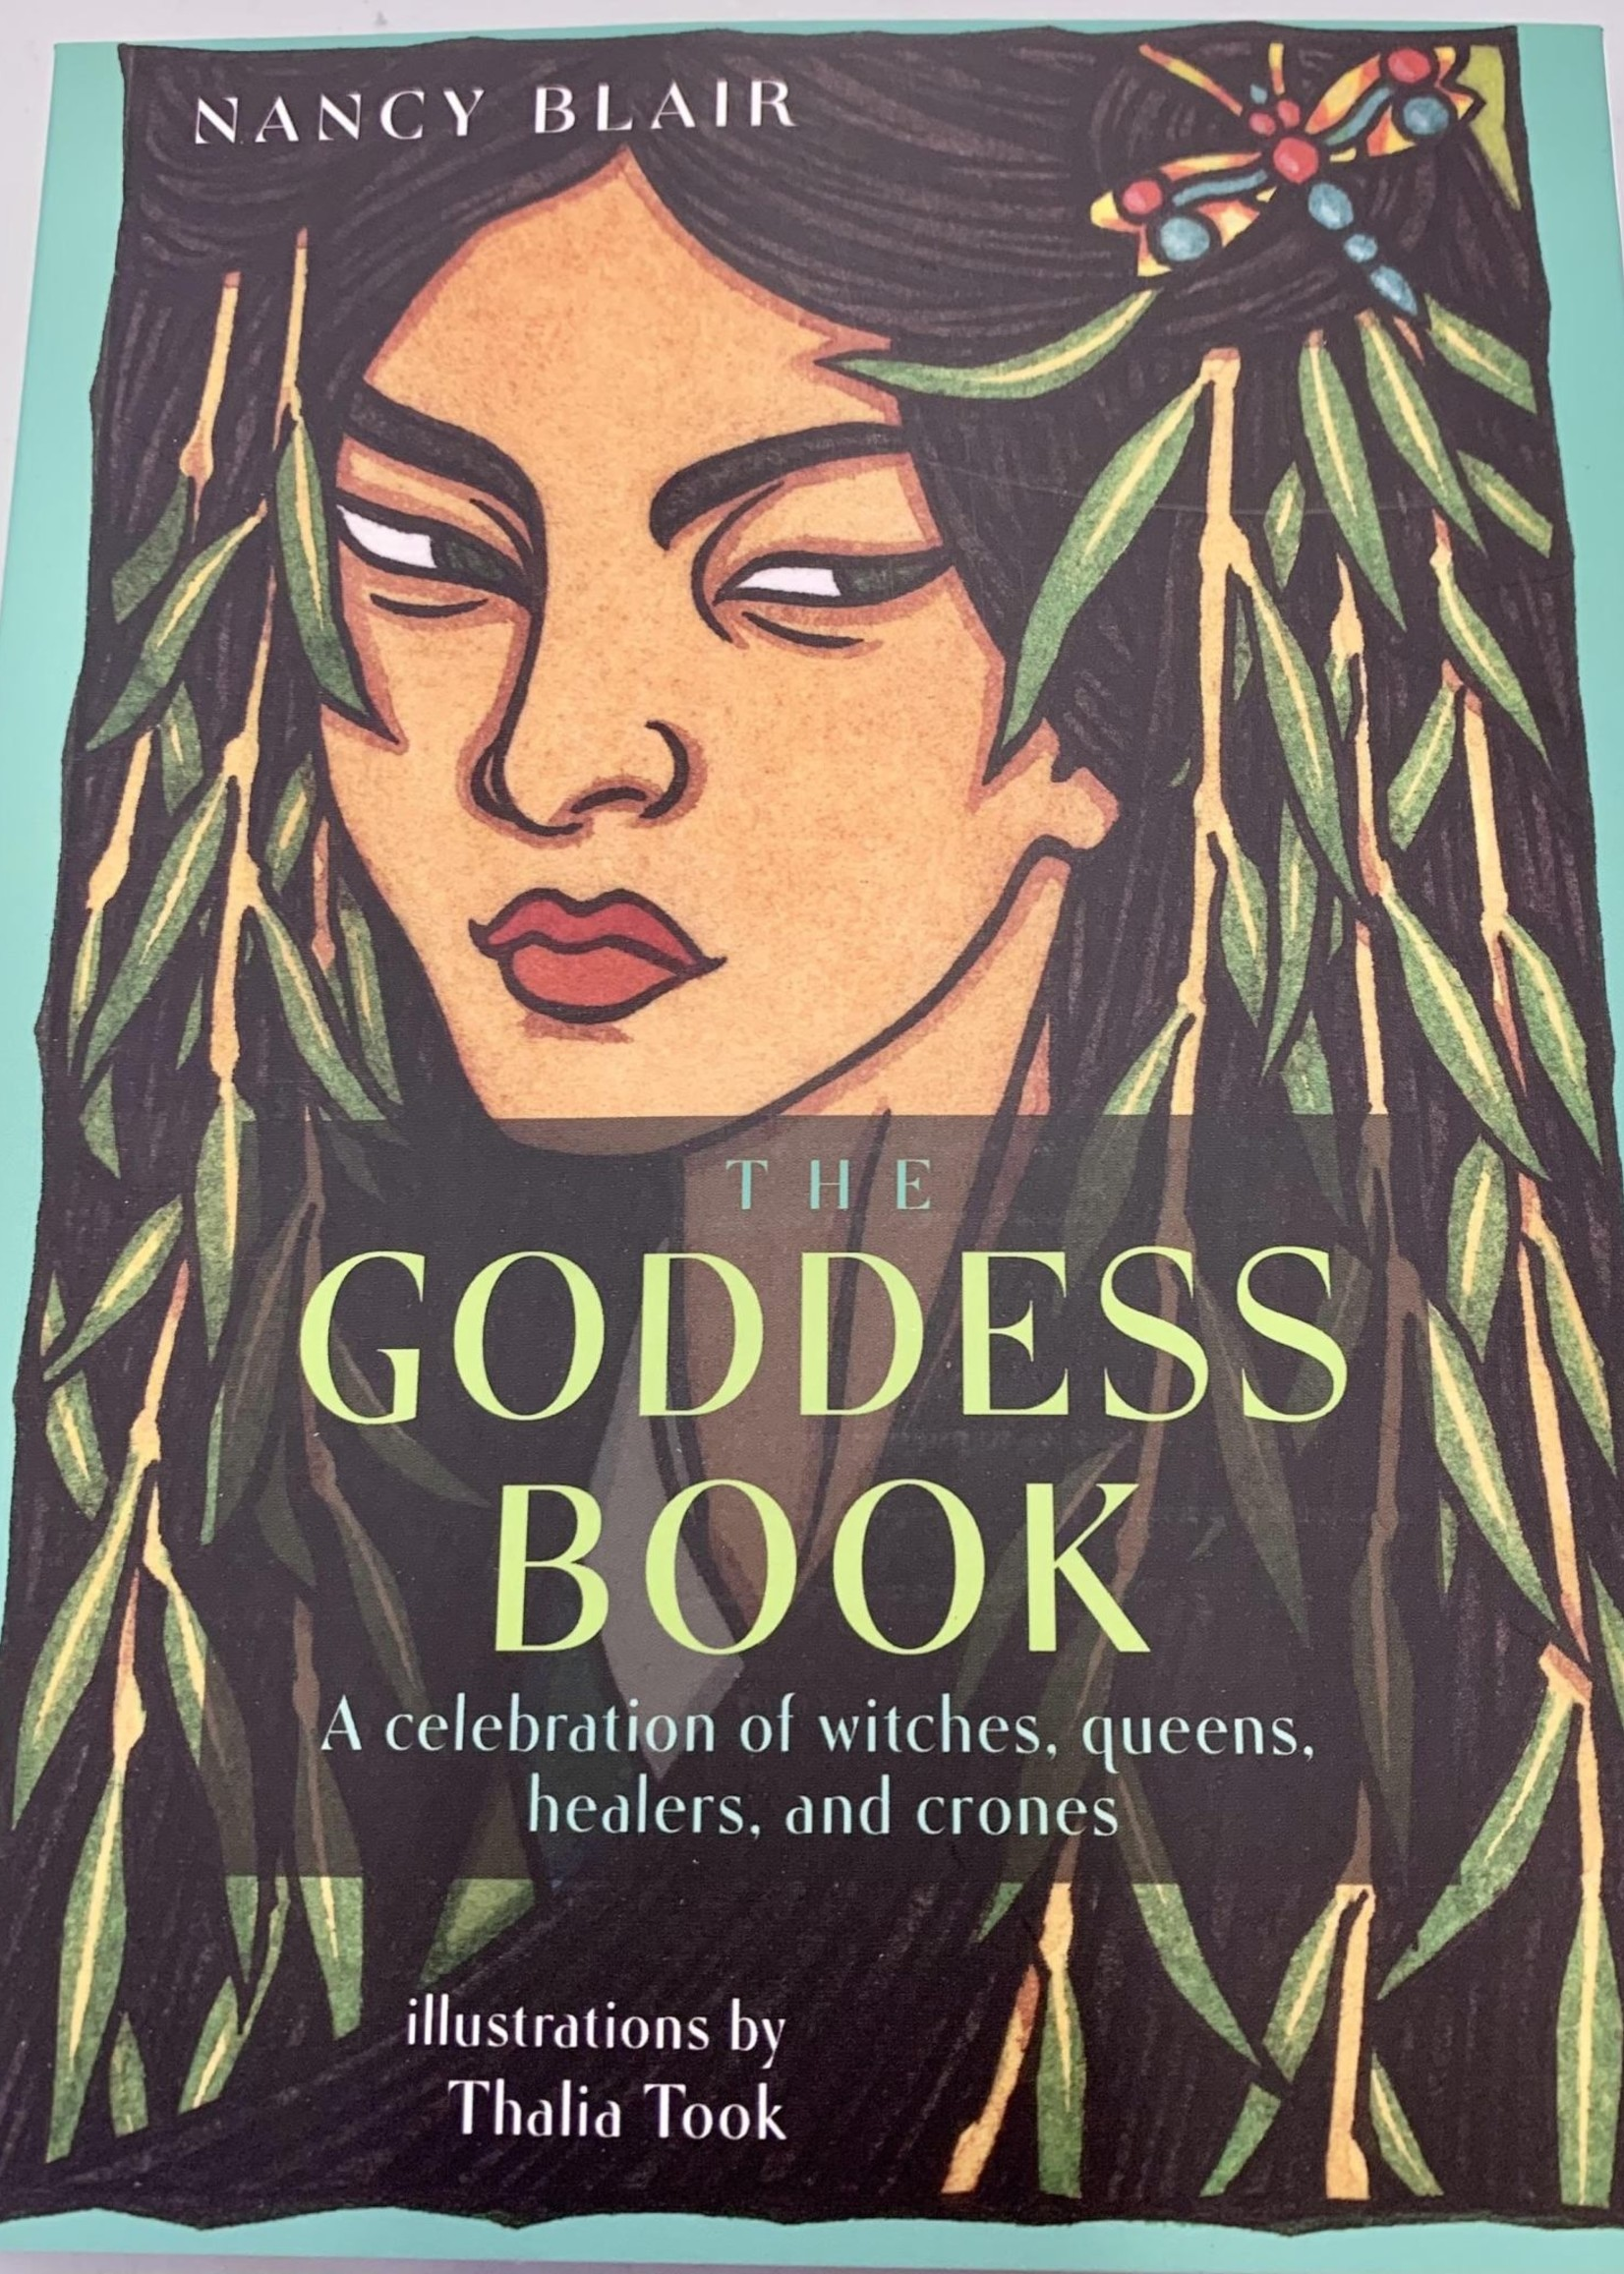 The Goddess Book A Celebration of Witches, Queens, Healers, and Crones - Author Nancy Blair, Illustrator Thalia Took